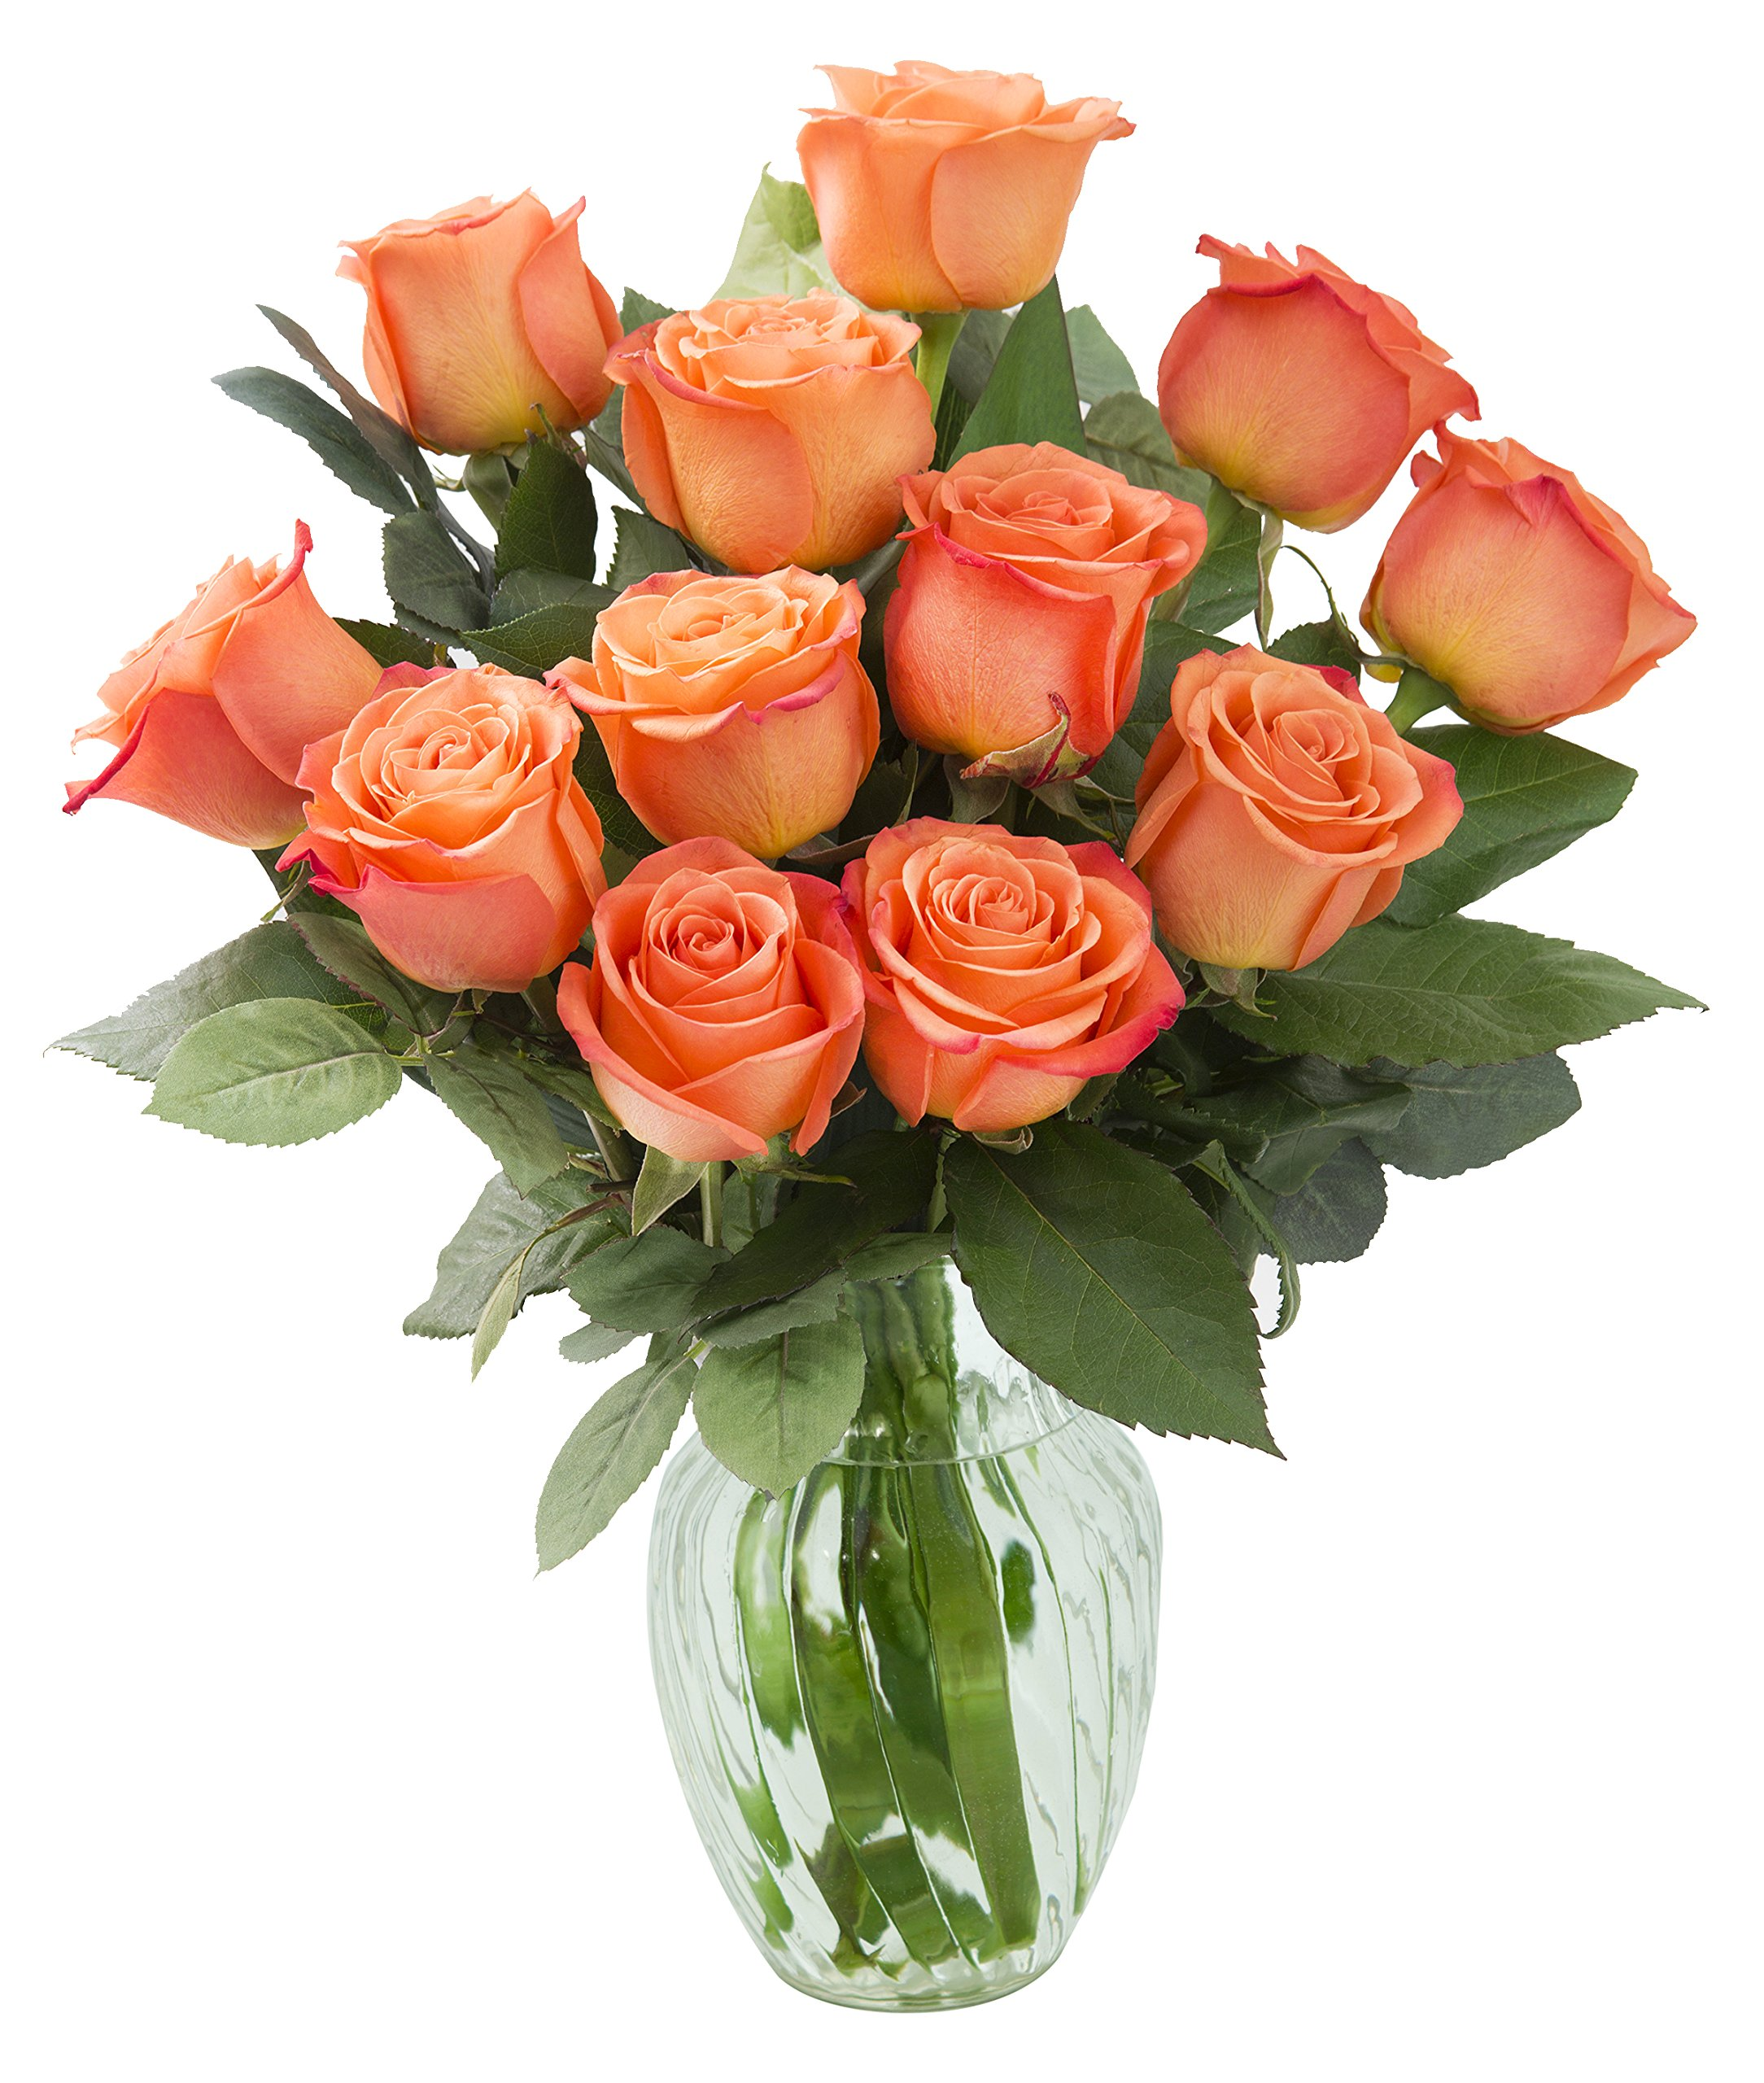 Amazon.com : KaBloom Bouquet of 12 Fresh Cut Orange Roses (Long ...